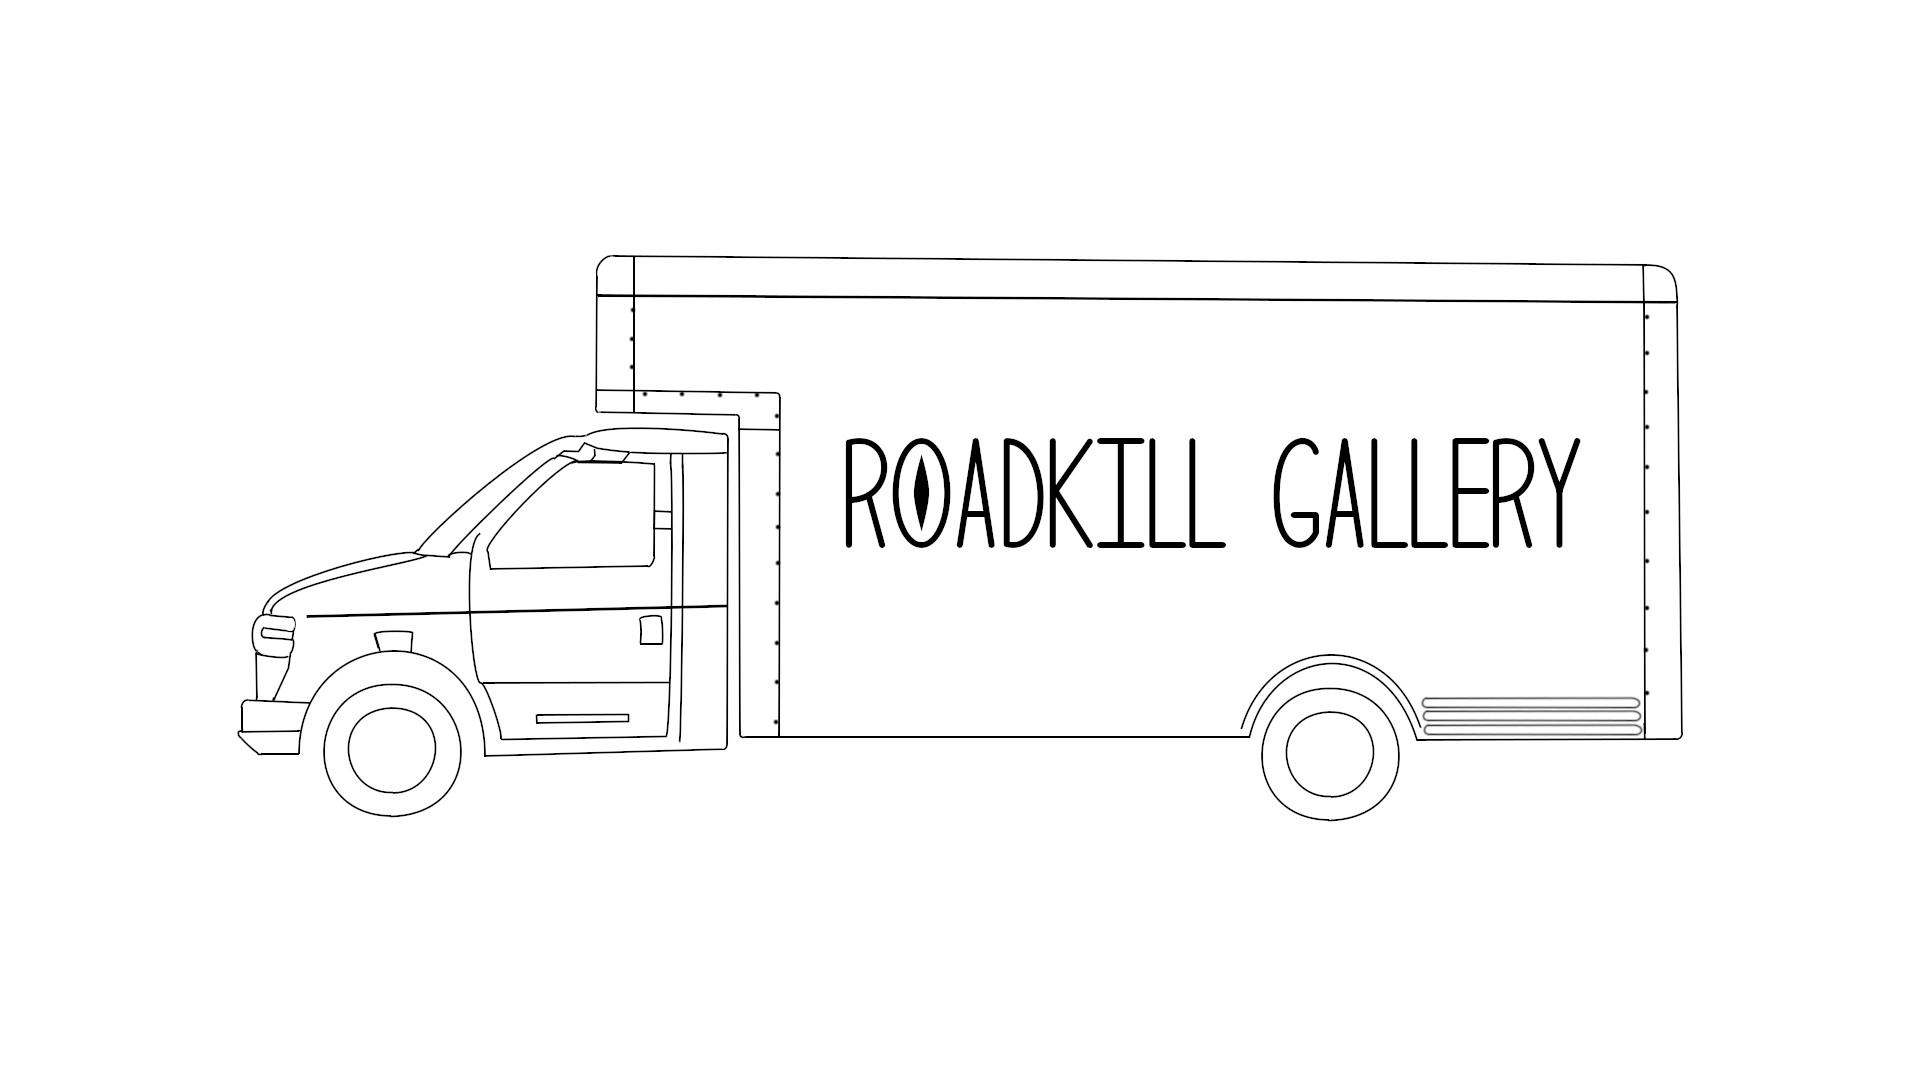 Roadkill Gallery